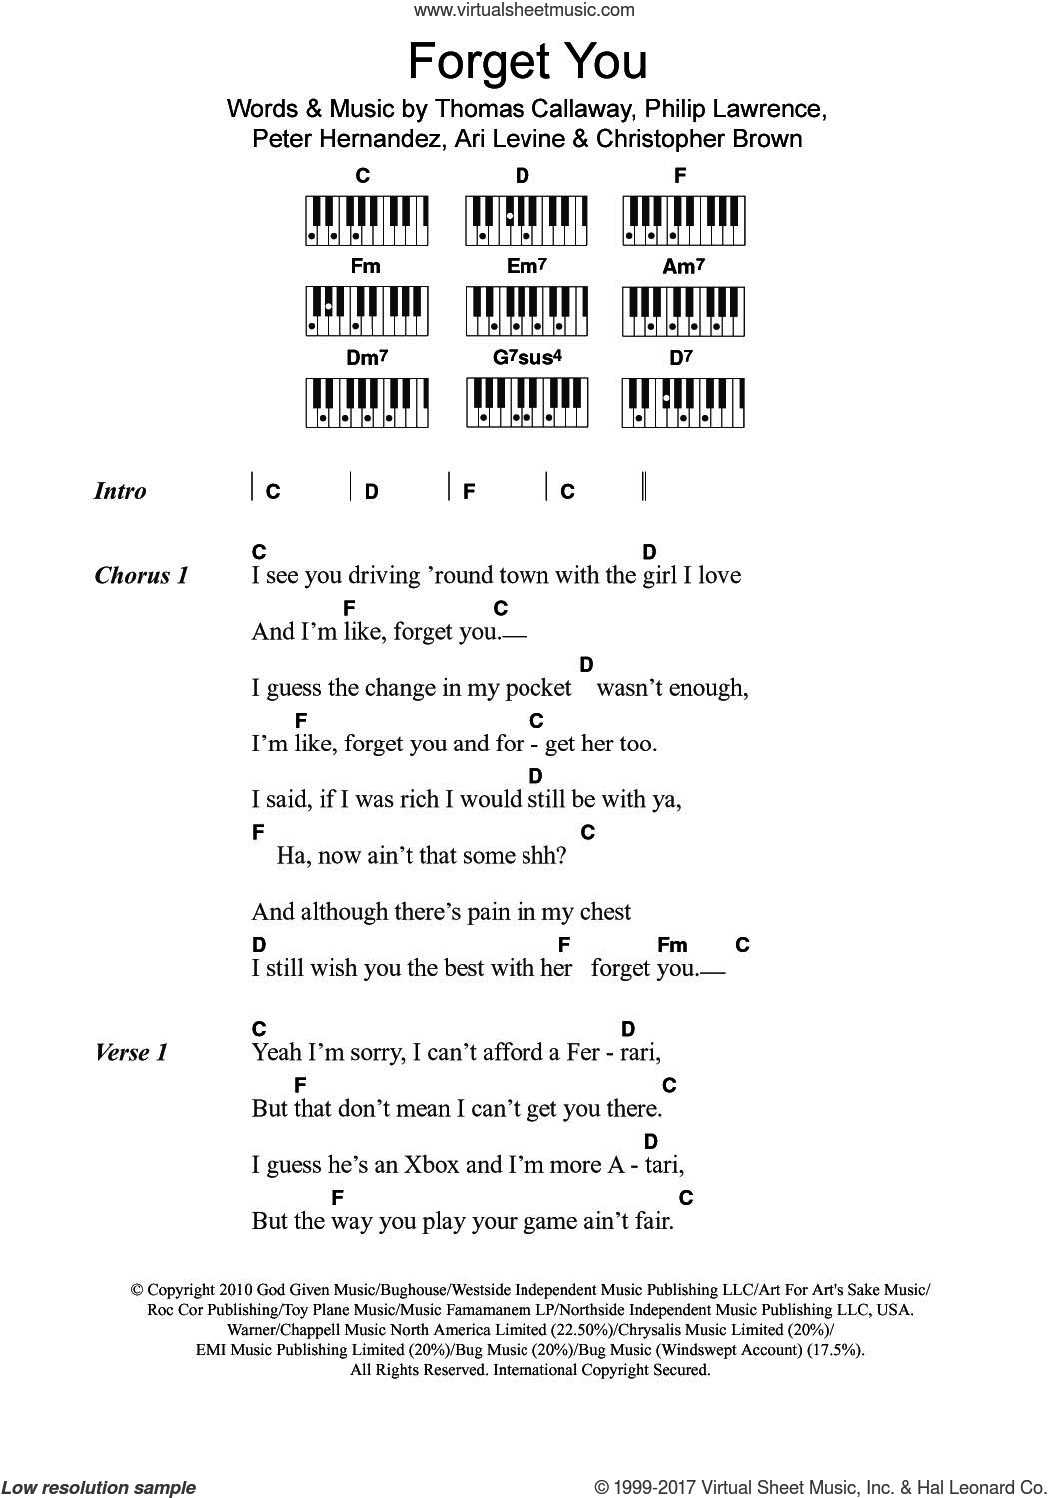 Forget You sheet music for piano solo (chords, lyrics, melody) by Cee Lo Green, Ari Levine, Chris Brown, Peter Hernandez, Philip Lawrence and Thomas Callaway, intermediate piano (chords, lyrics, melody)